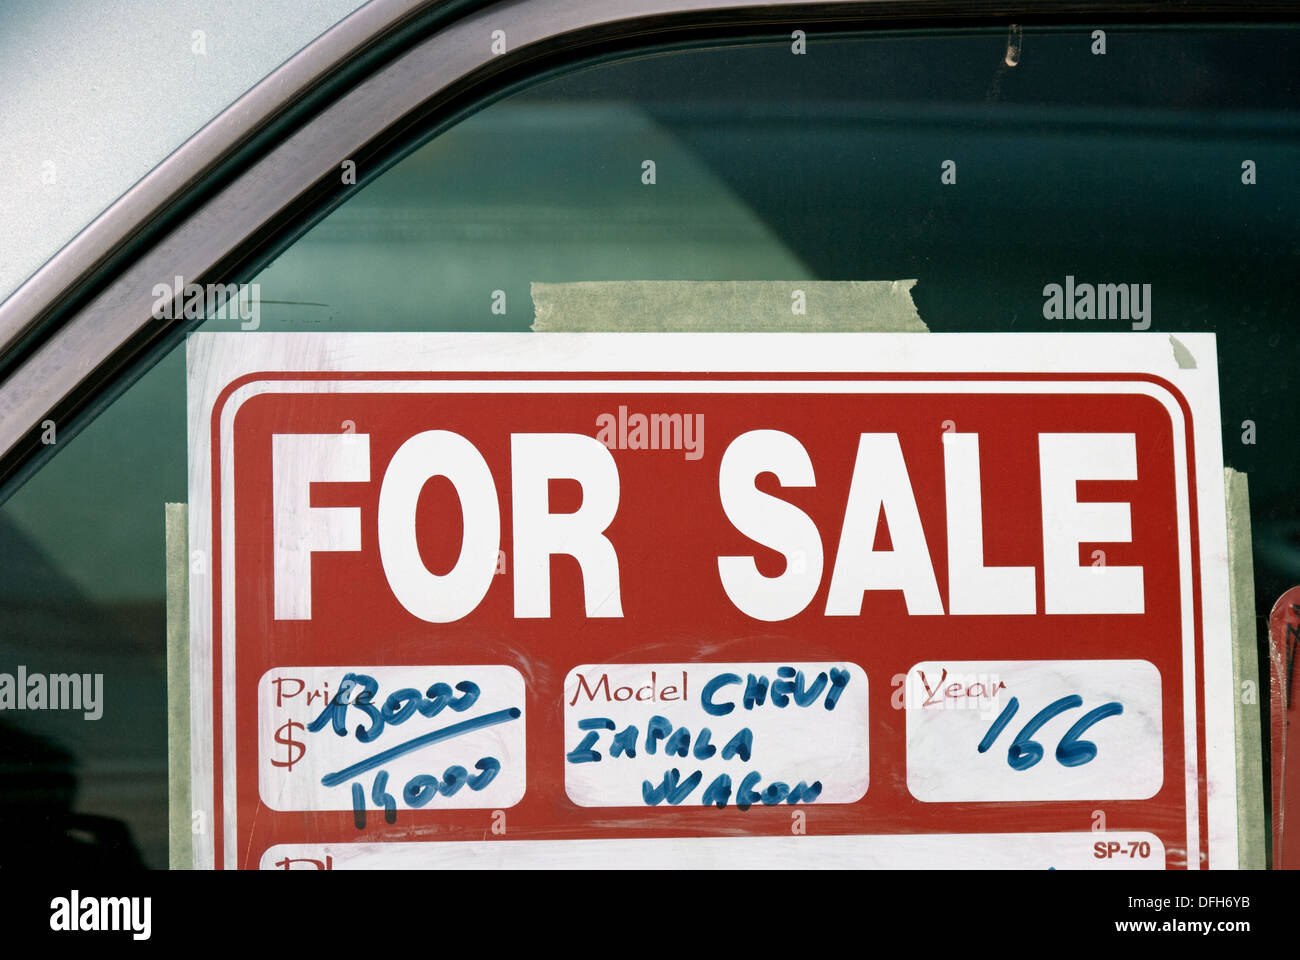 For Sale Sign On The Car Window Stock Photo 61229599 Alamy